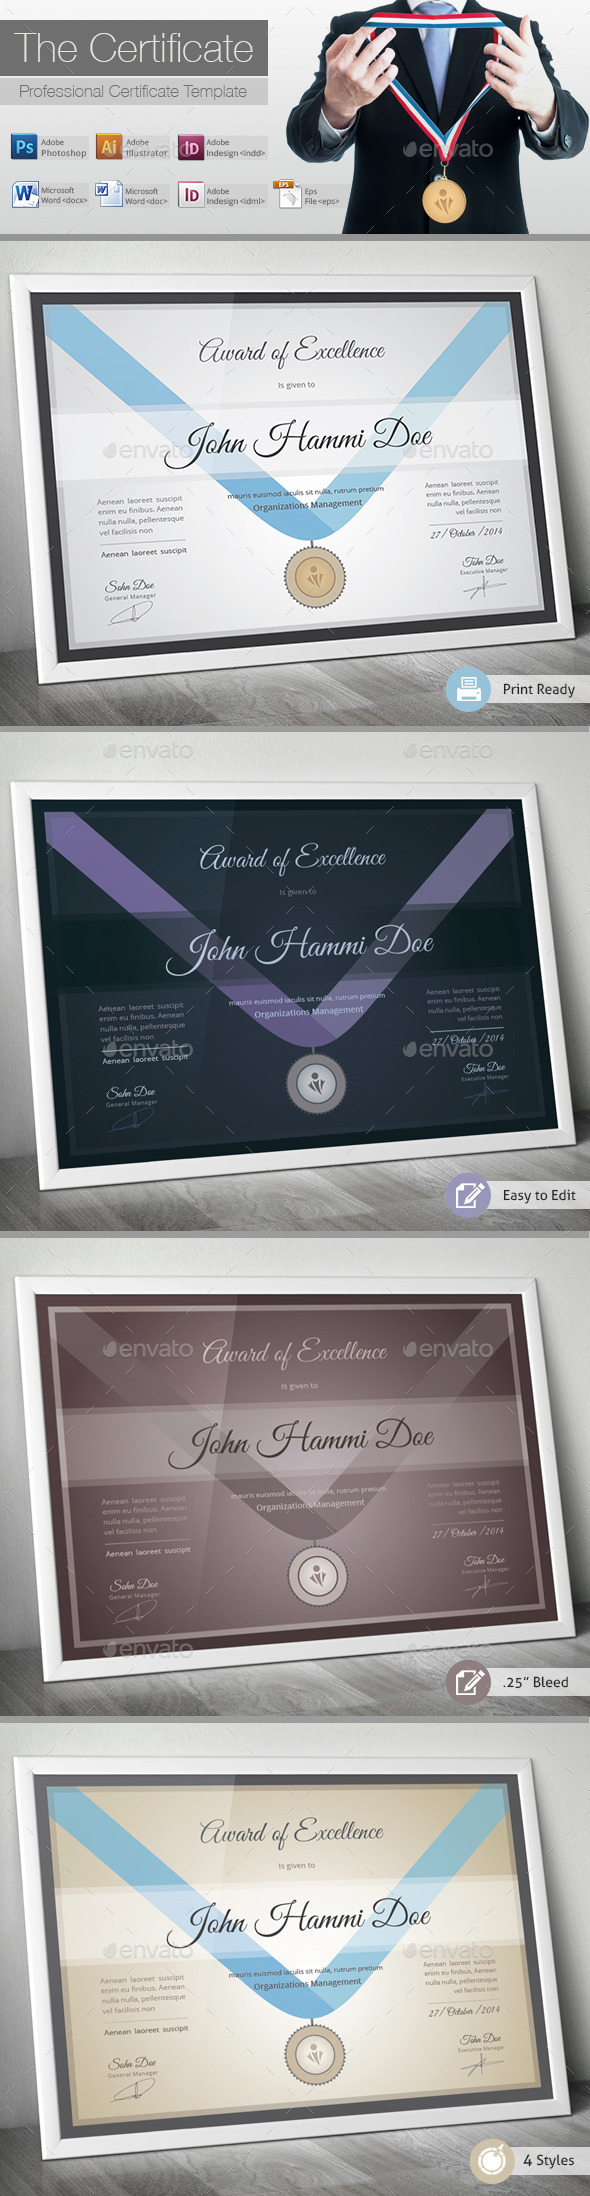 GraphicRiver The Certificate 10389123